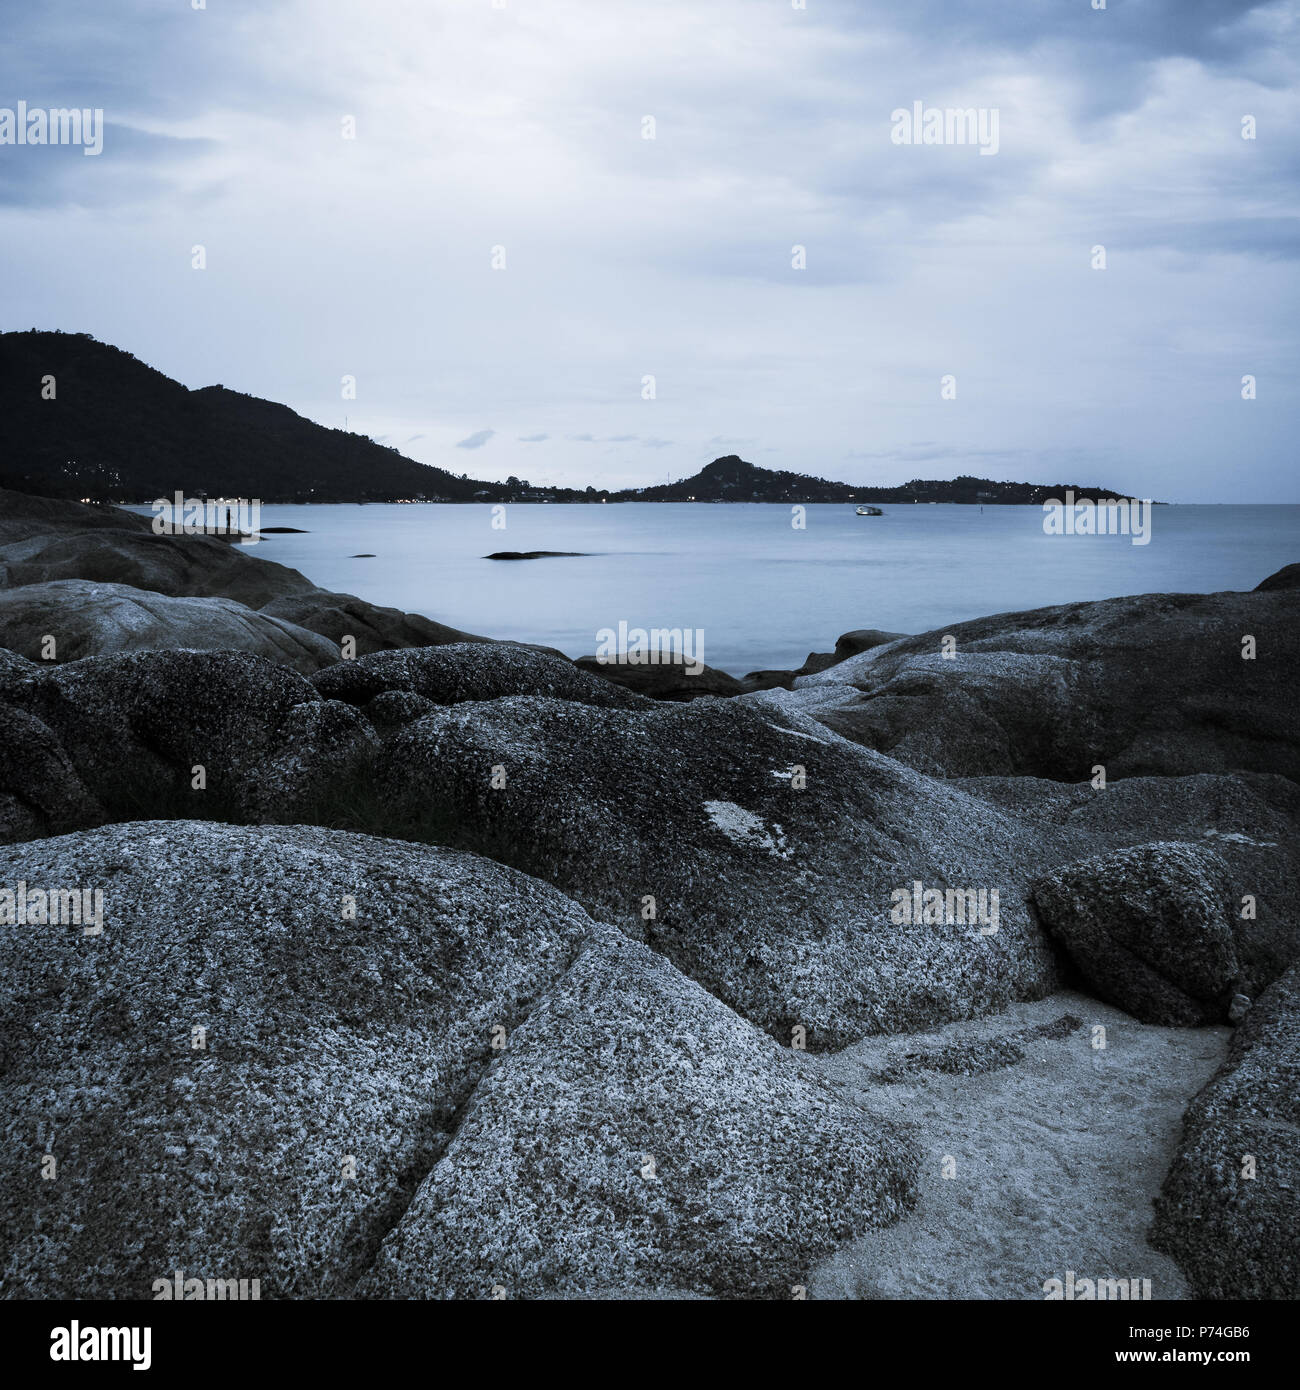 Rocky seashore with distant land. Silver tint - Stock Image